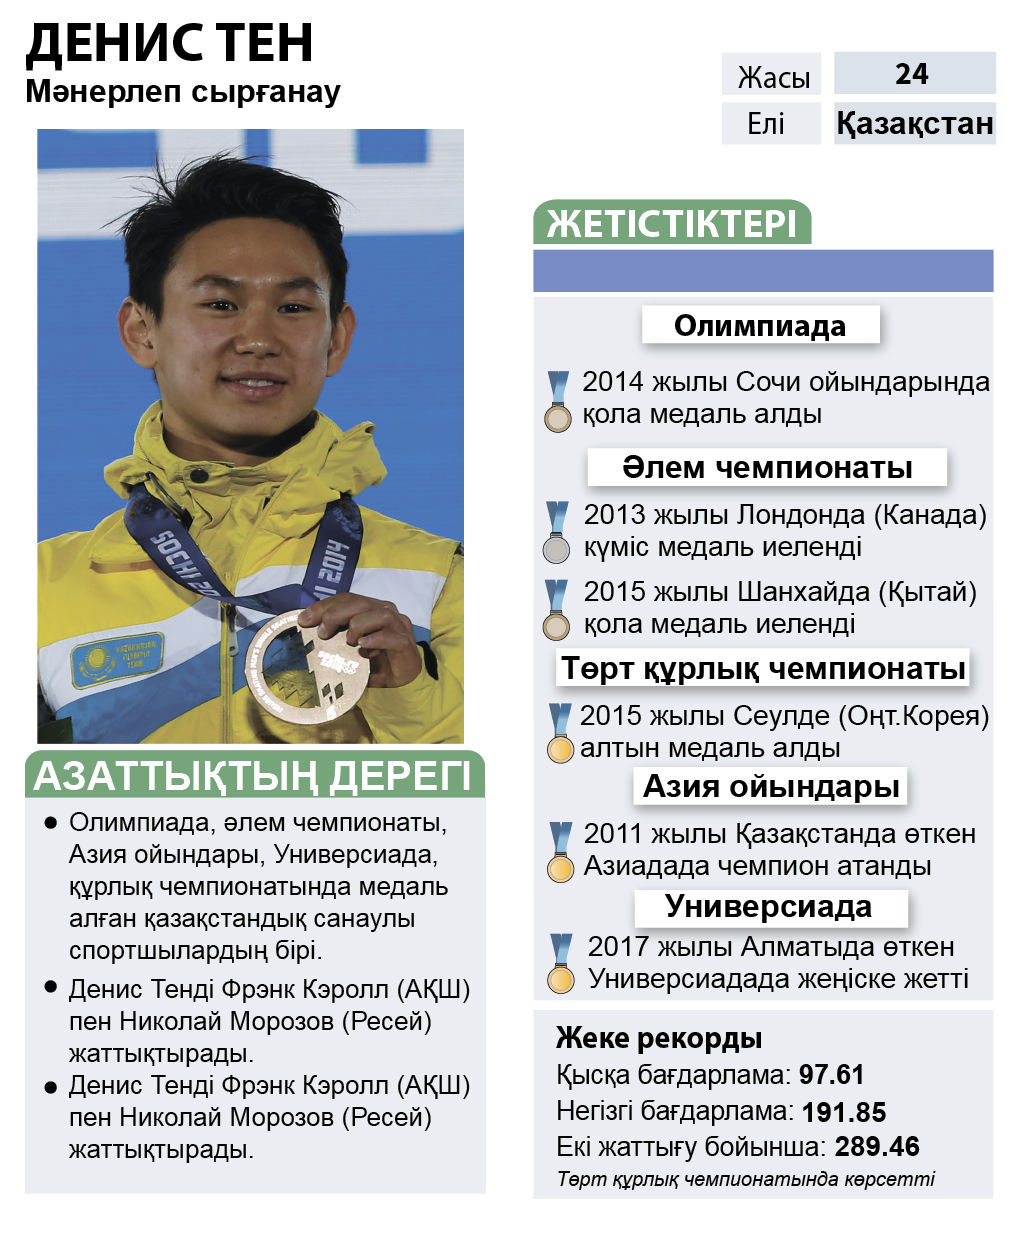 infographic about Denis Ten